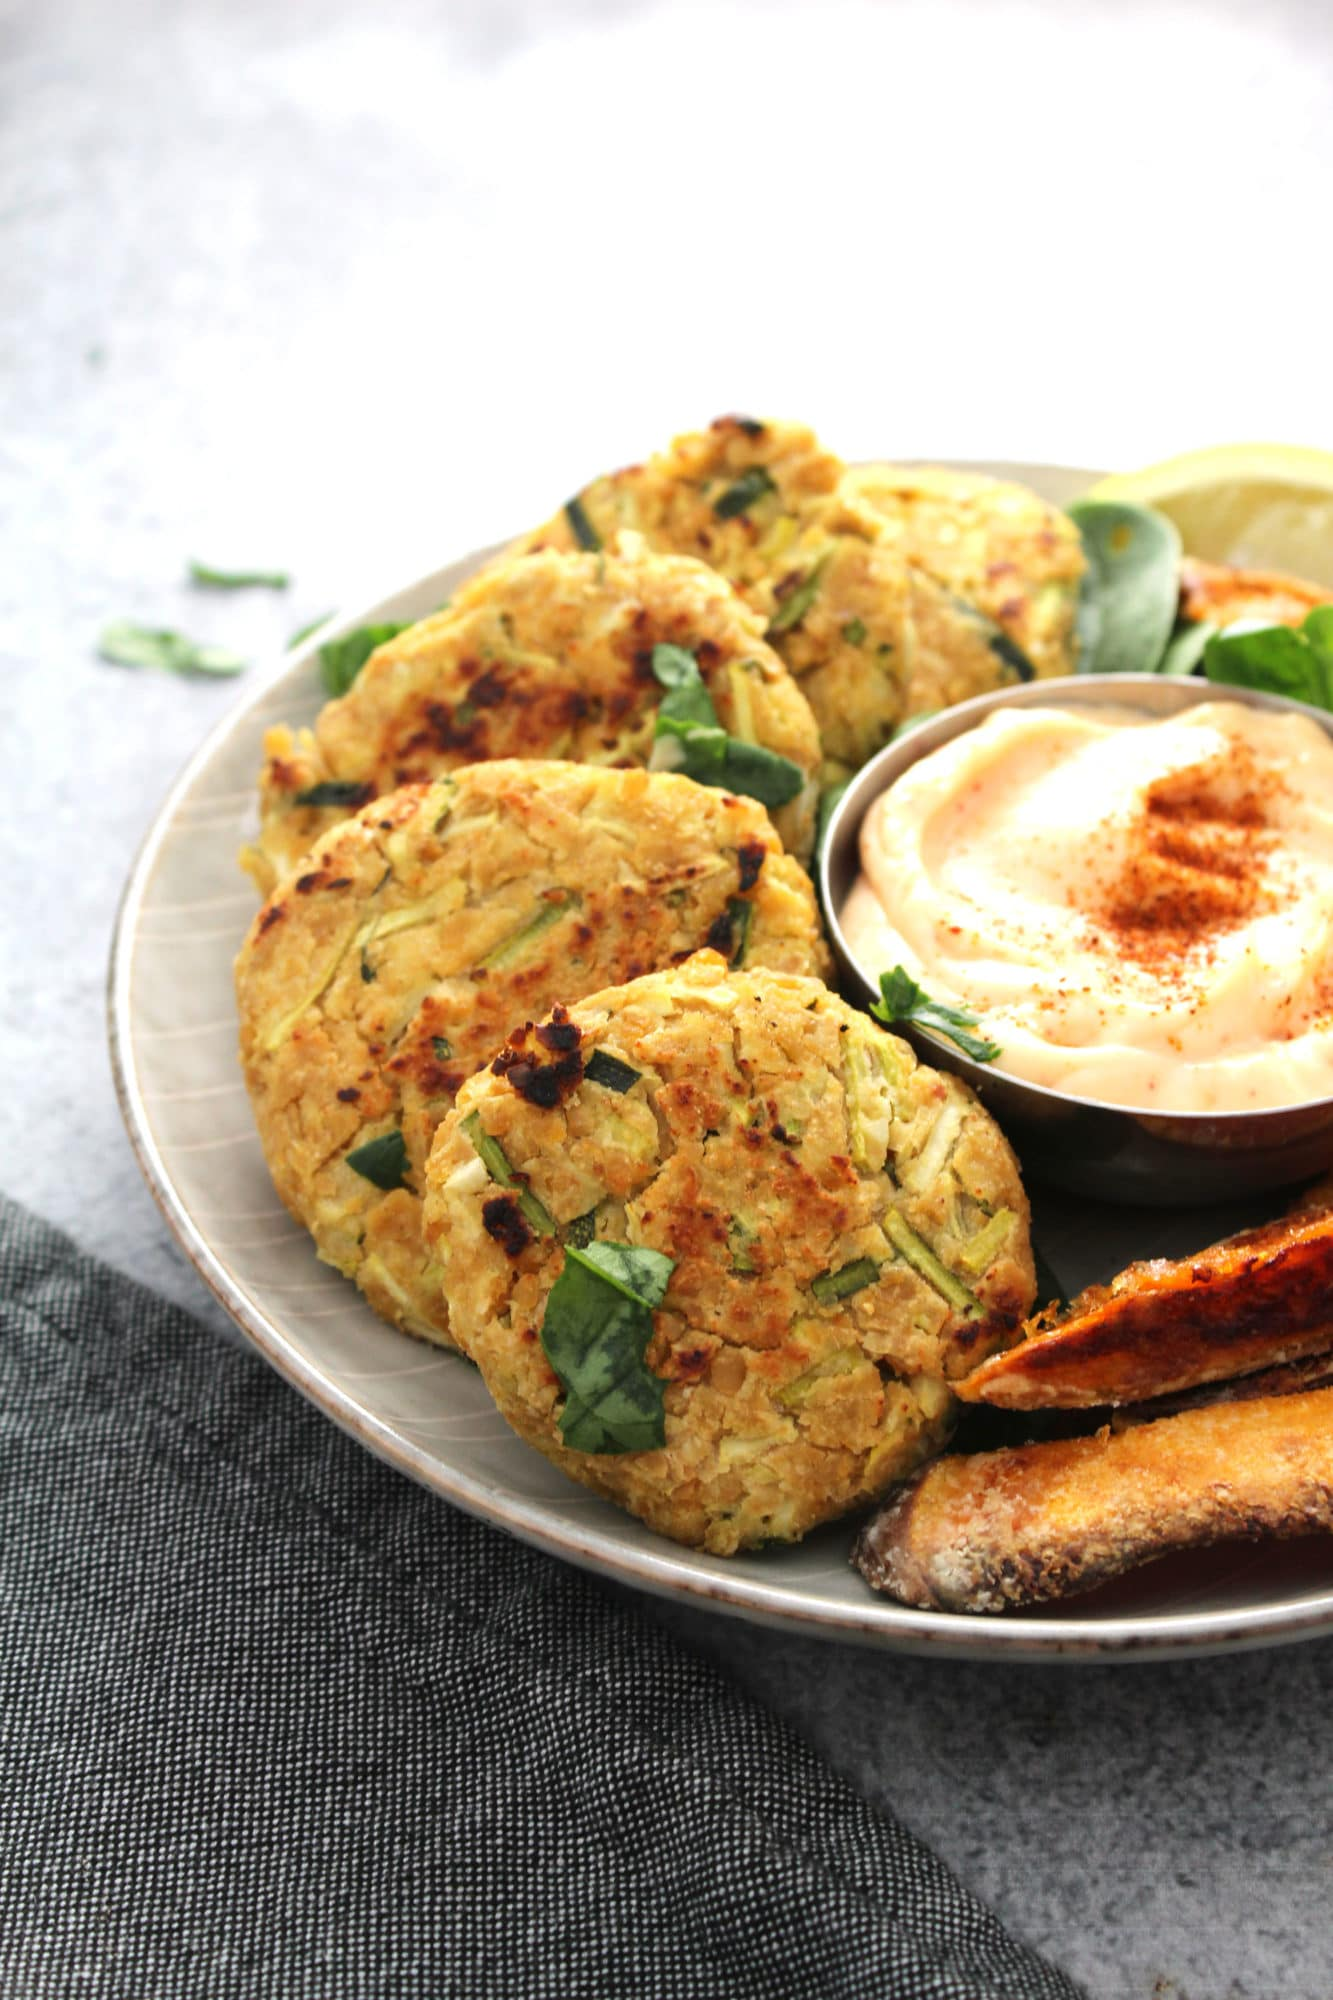 Chickpea Zucchini Fritters are perfect when you want a sophisticated vegetarian dinner that is super tasty and fun (work well as burgers too) | via @AimeeMarsLiving | #Chickpeas #Fritters #Zucchini #SweetPotatoWedges